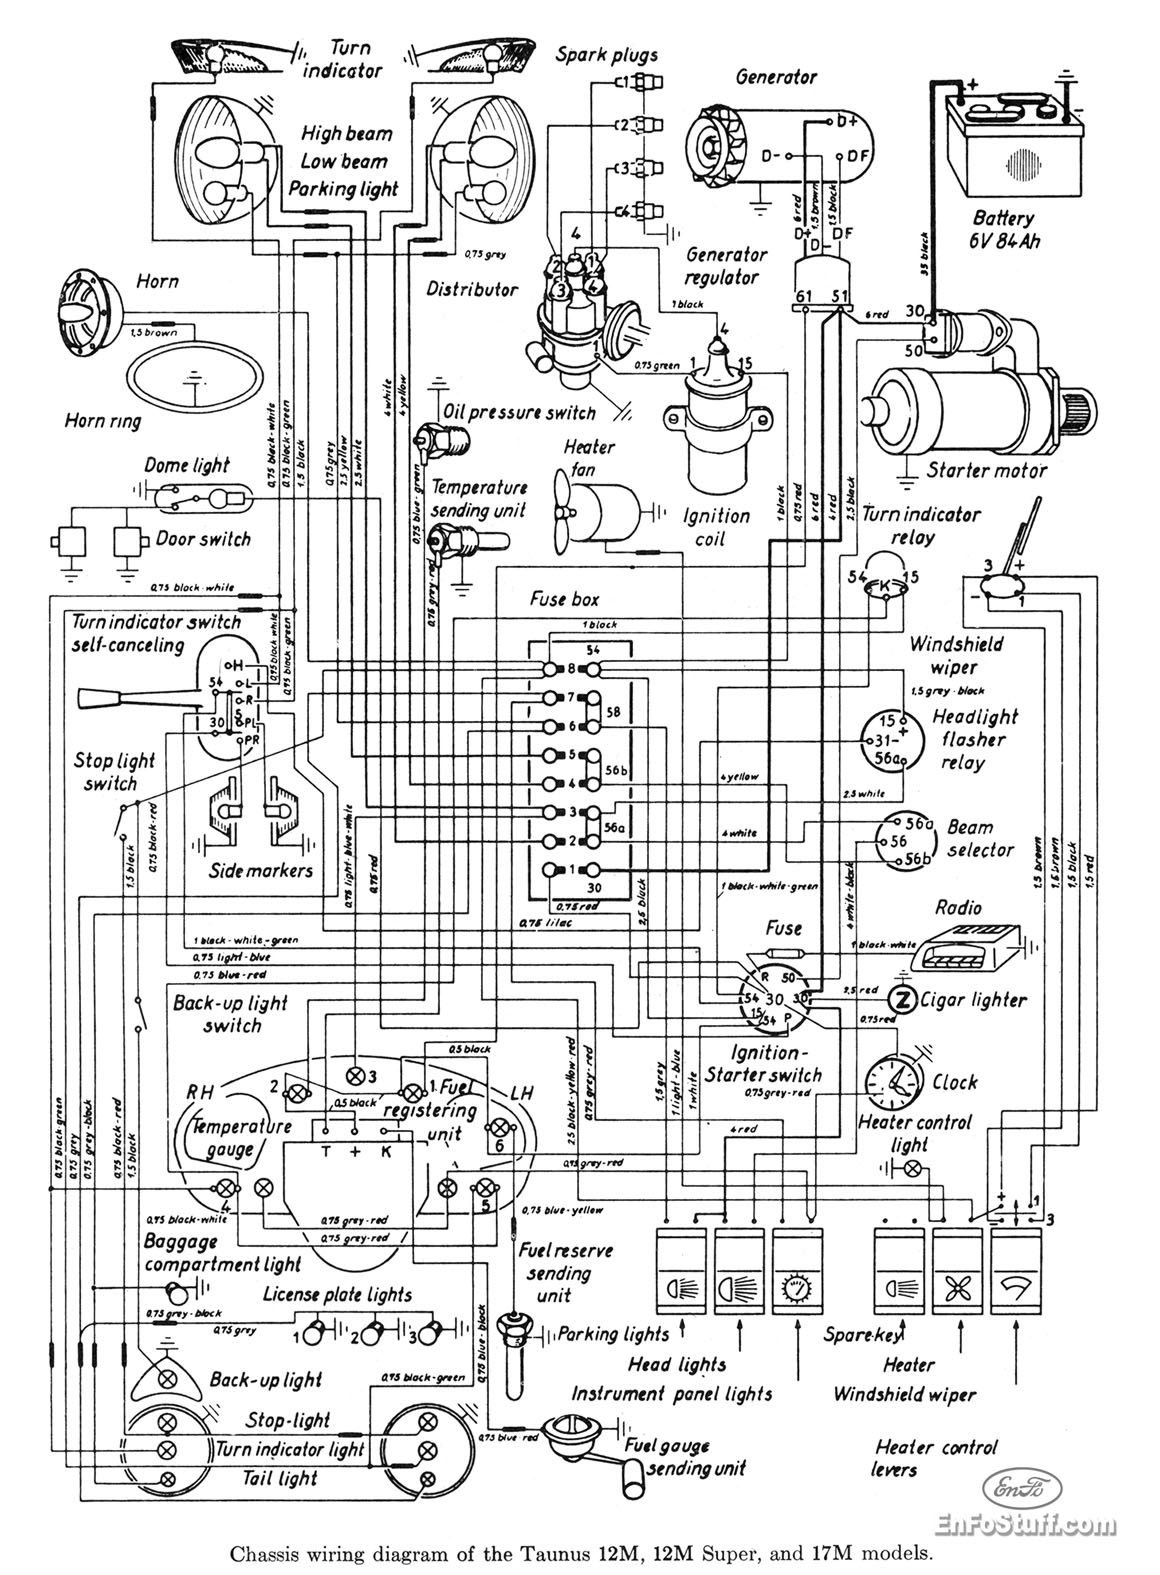 Mitsubishi L200 Warrior Wiring Diagram Online Schematics Car Fuse Box U2022 Nissan D21